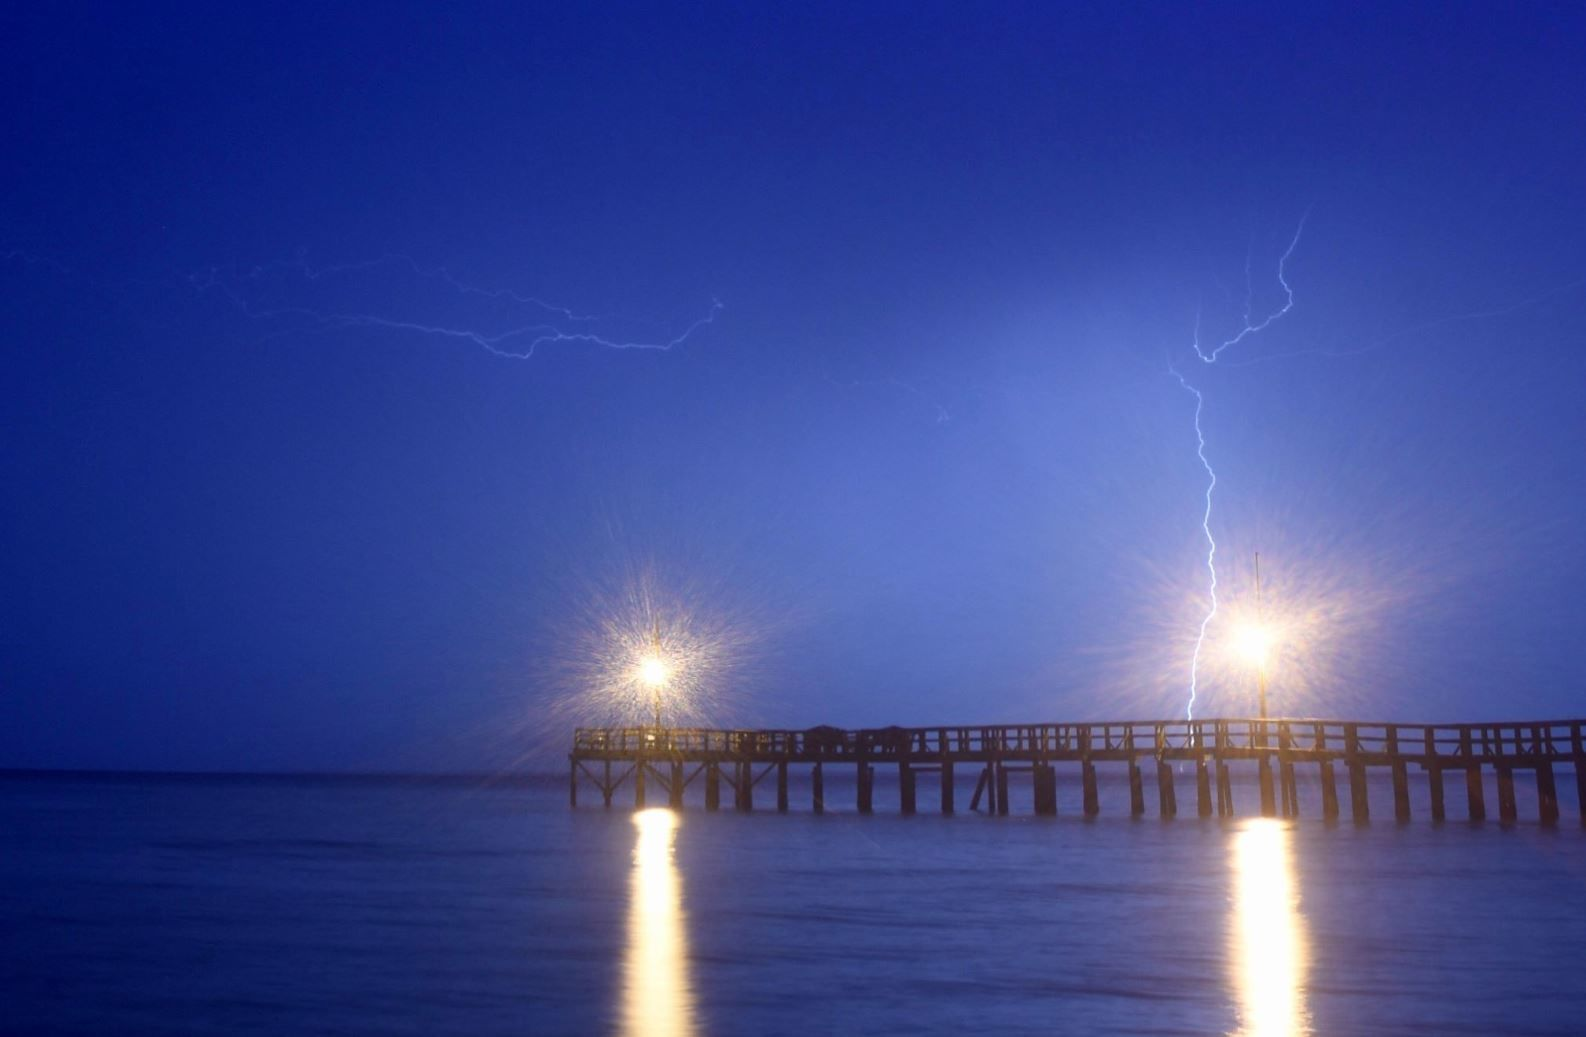 Lightning strikes over the Chesapeake Bay in Calvert County, Maryland, on Monday, June 17, 2019. (WTOP/Dave Dildine)